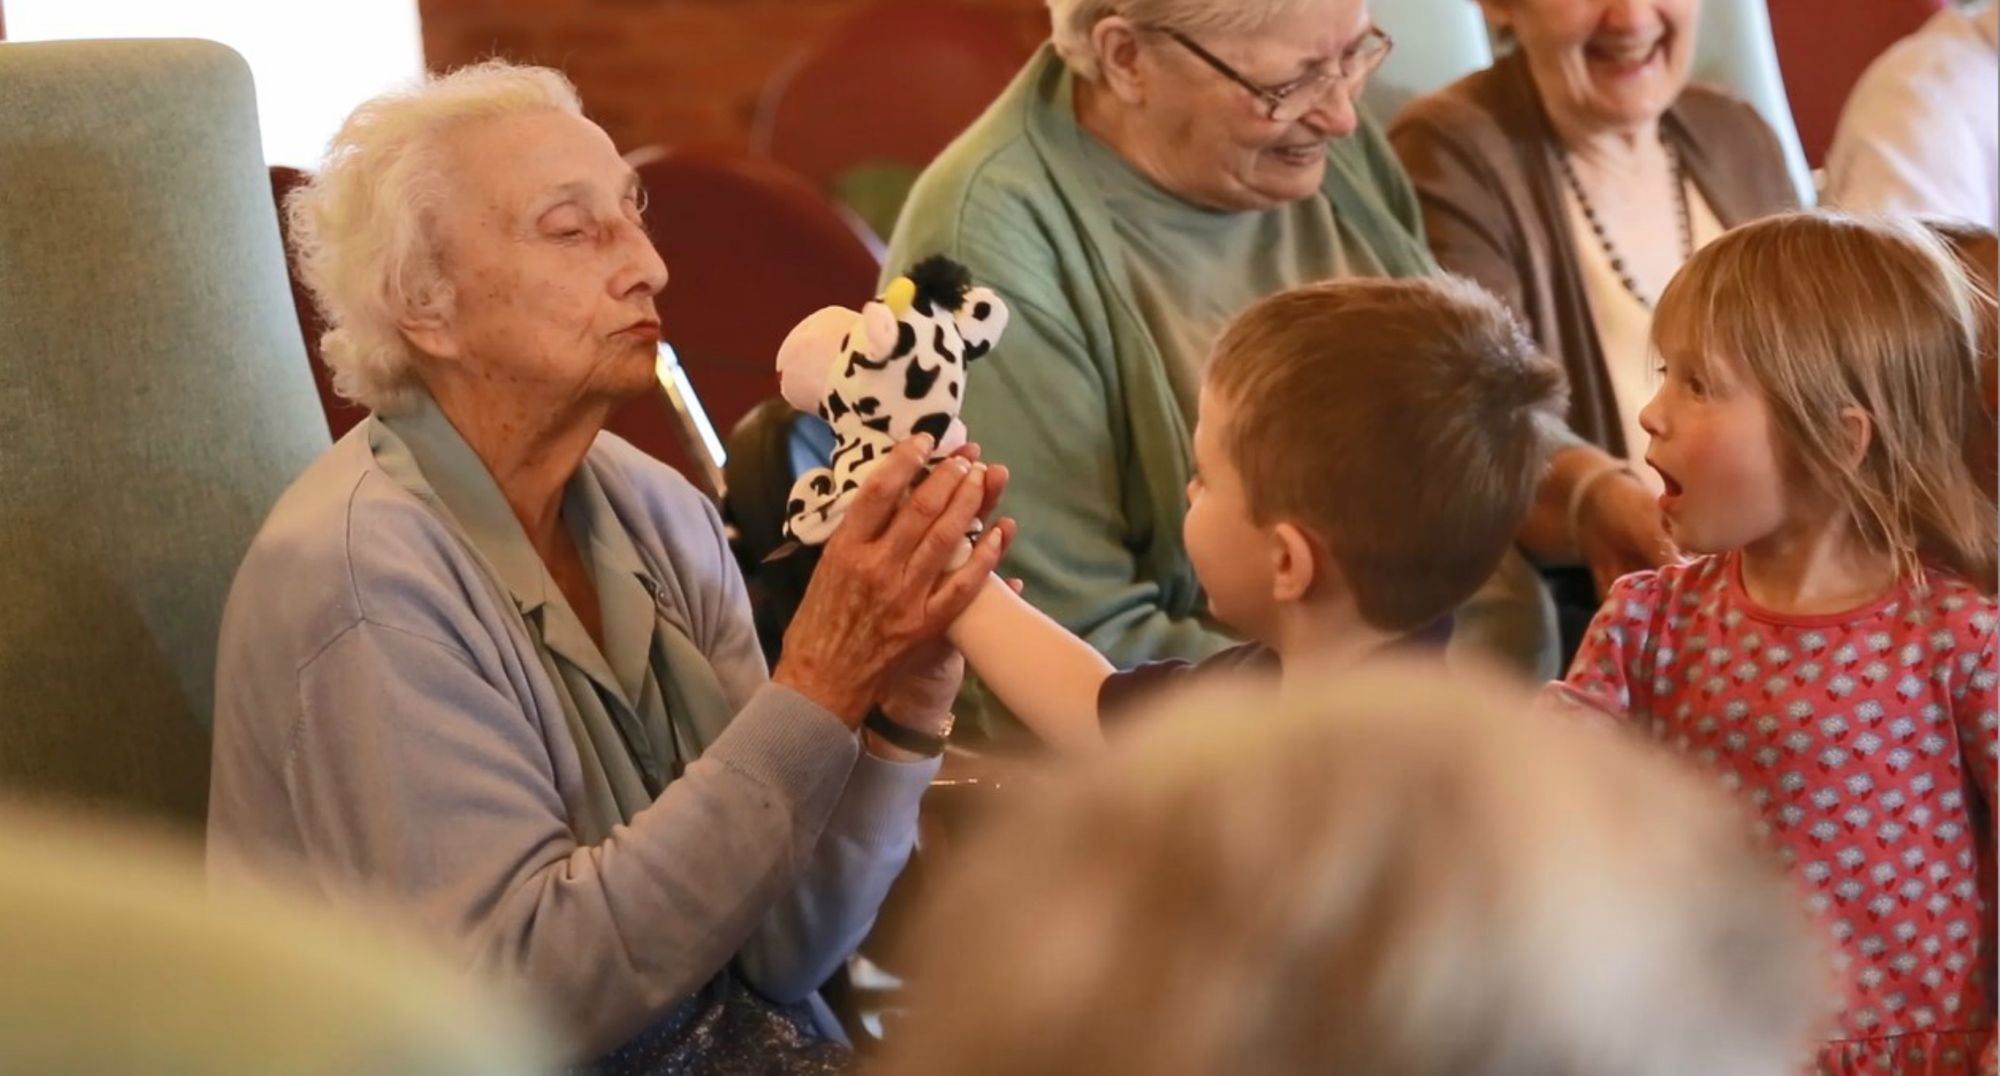 Joining the Generations project bringing benefits to young and old alike